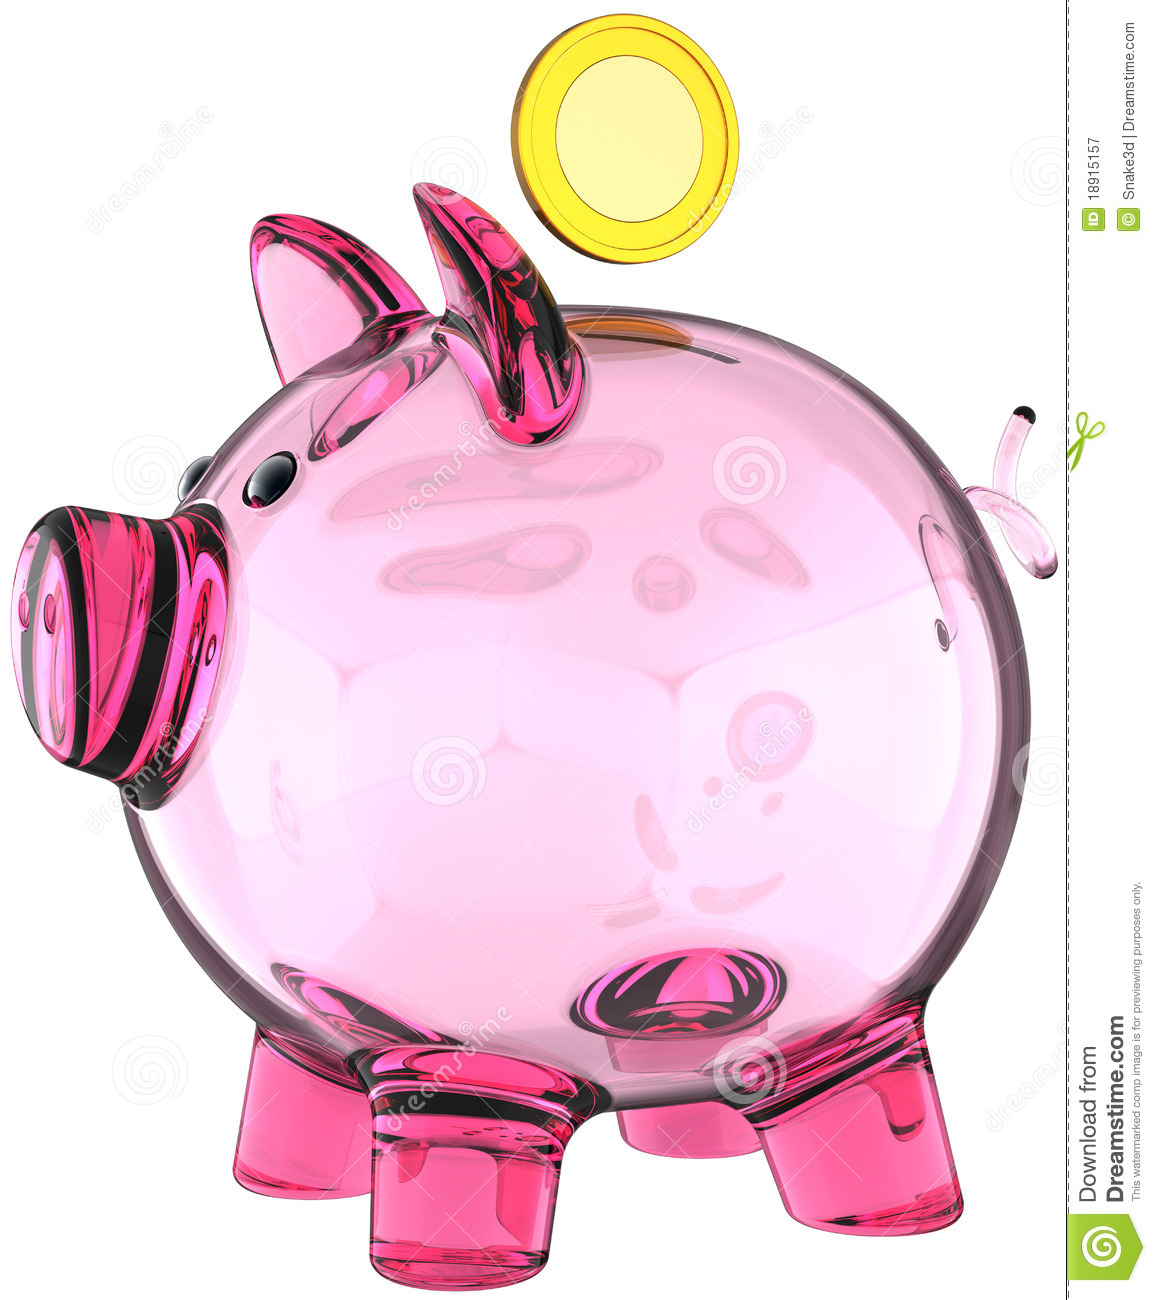 Piggy Glass Piggy Bank Pink Glass Translucent Royalty Free Stock